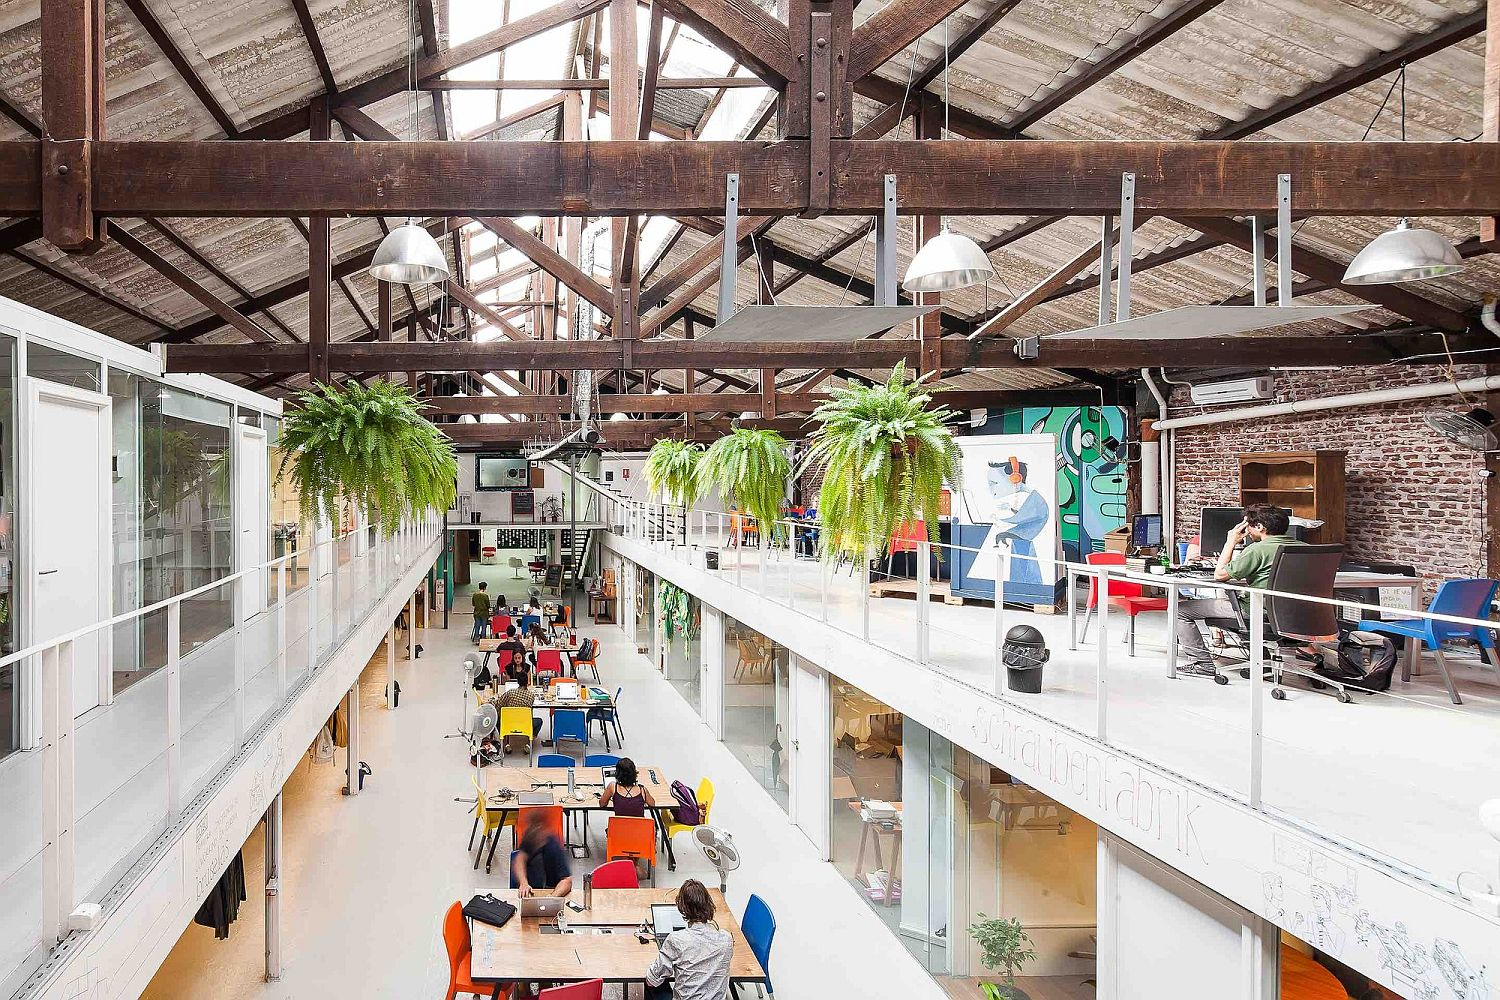 Indoor plants become an essential part of the modern industrial office makeover Sinergia Cowork Palermo: Adaptive Reuse at its Industrial Best